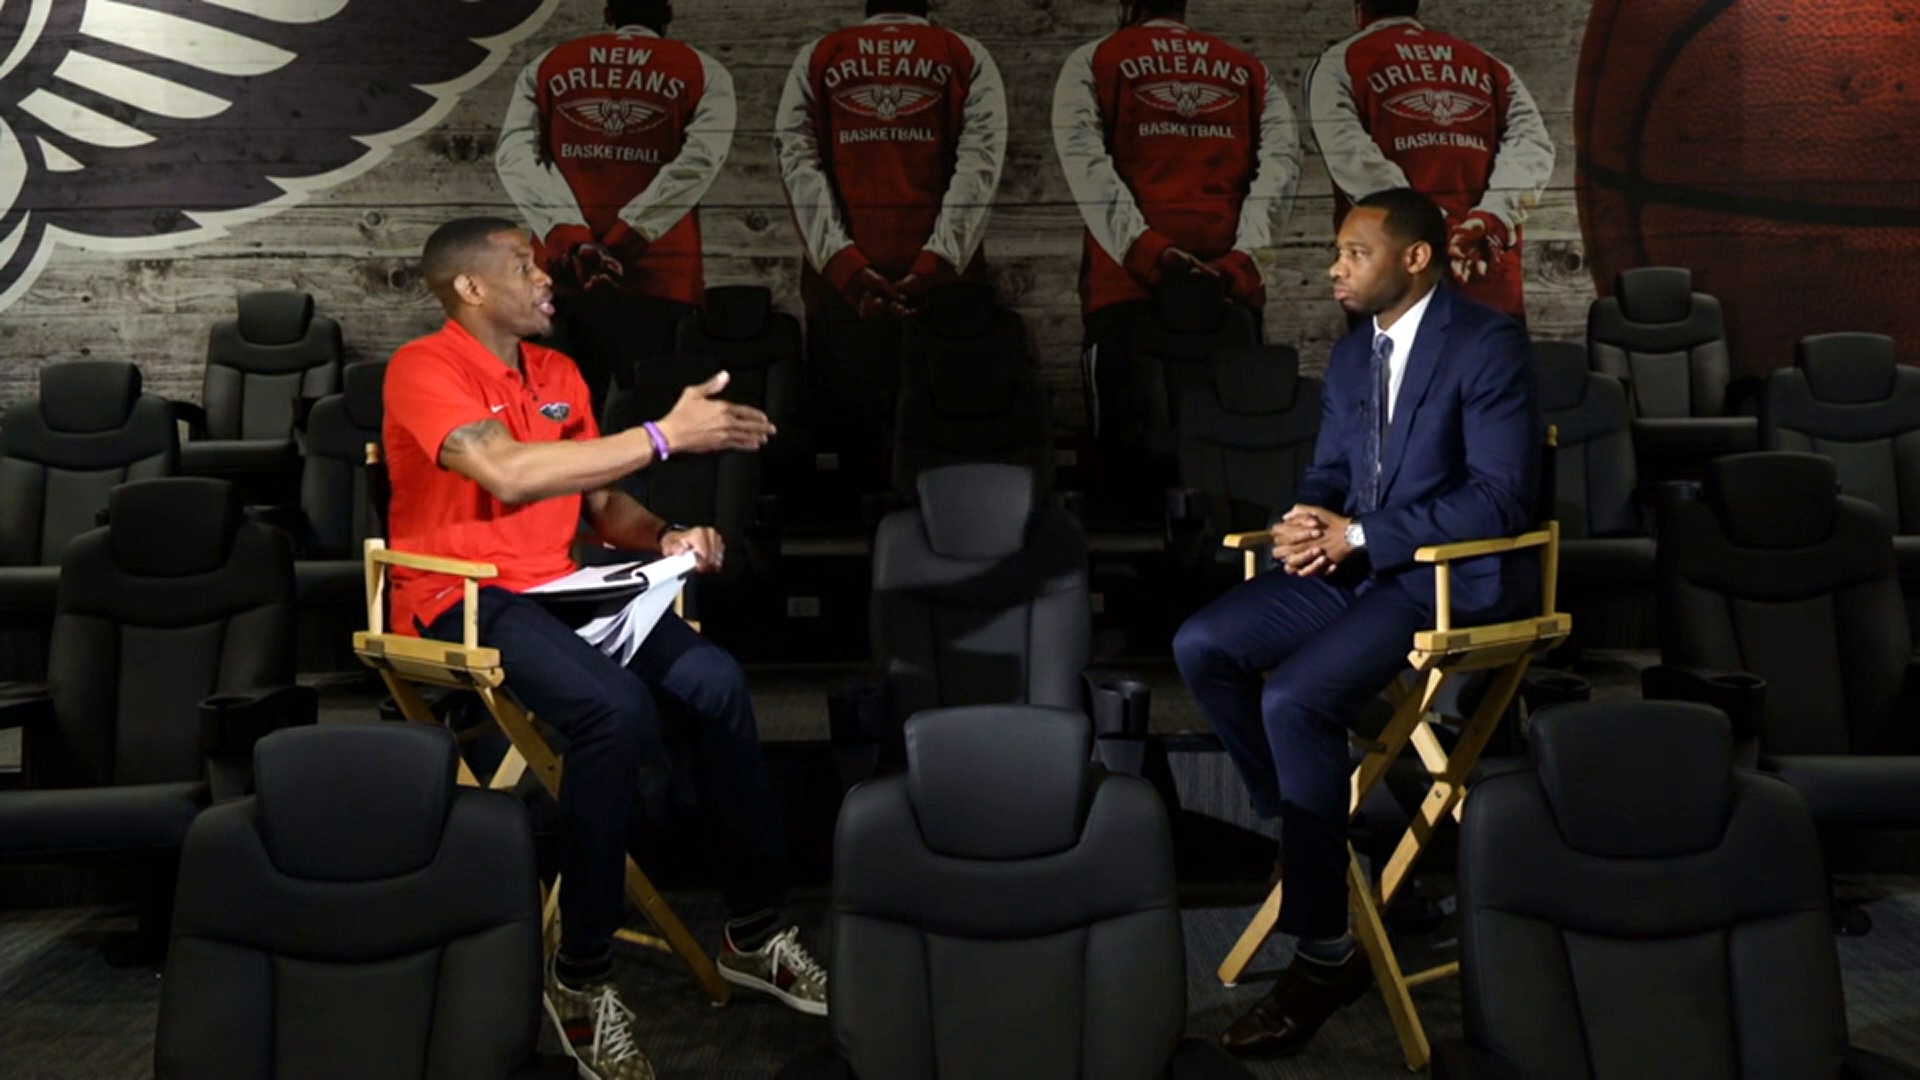 Willie Green one-on-one interview with Antonio Daniels